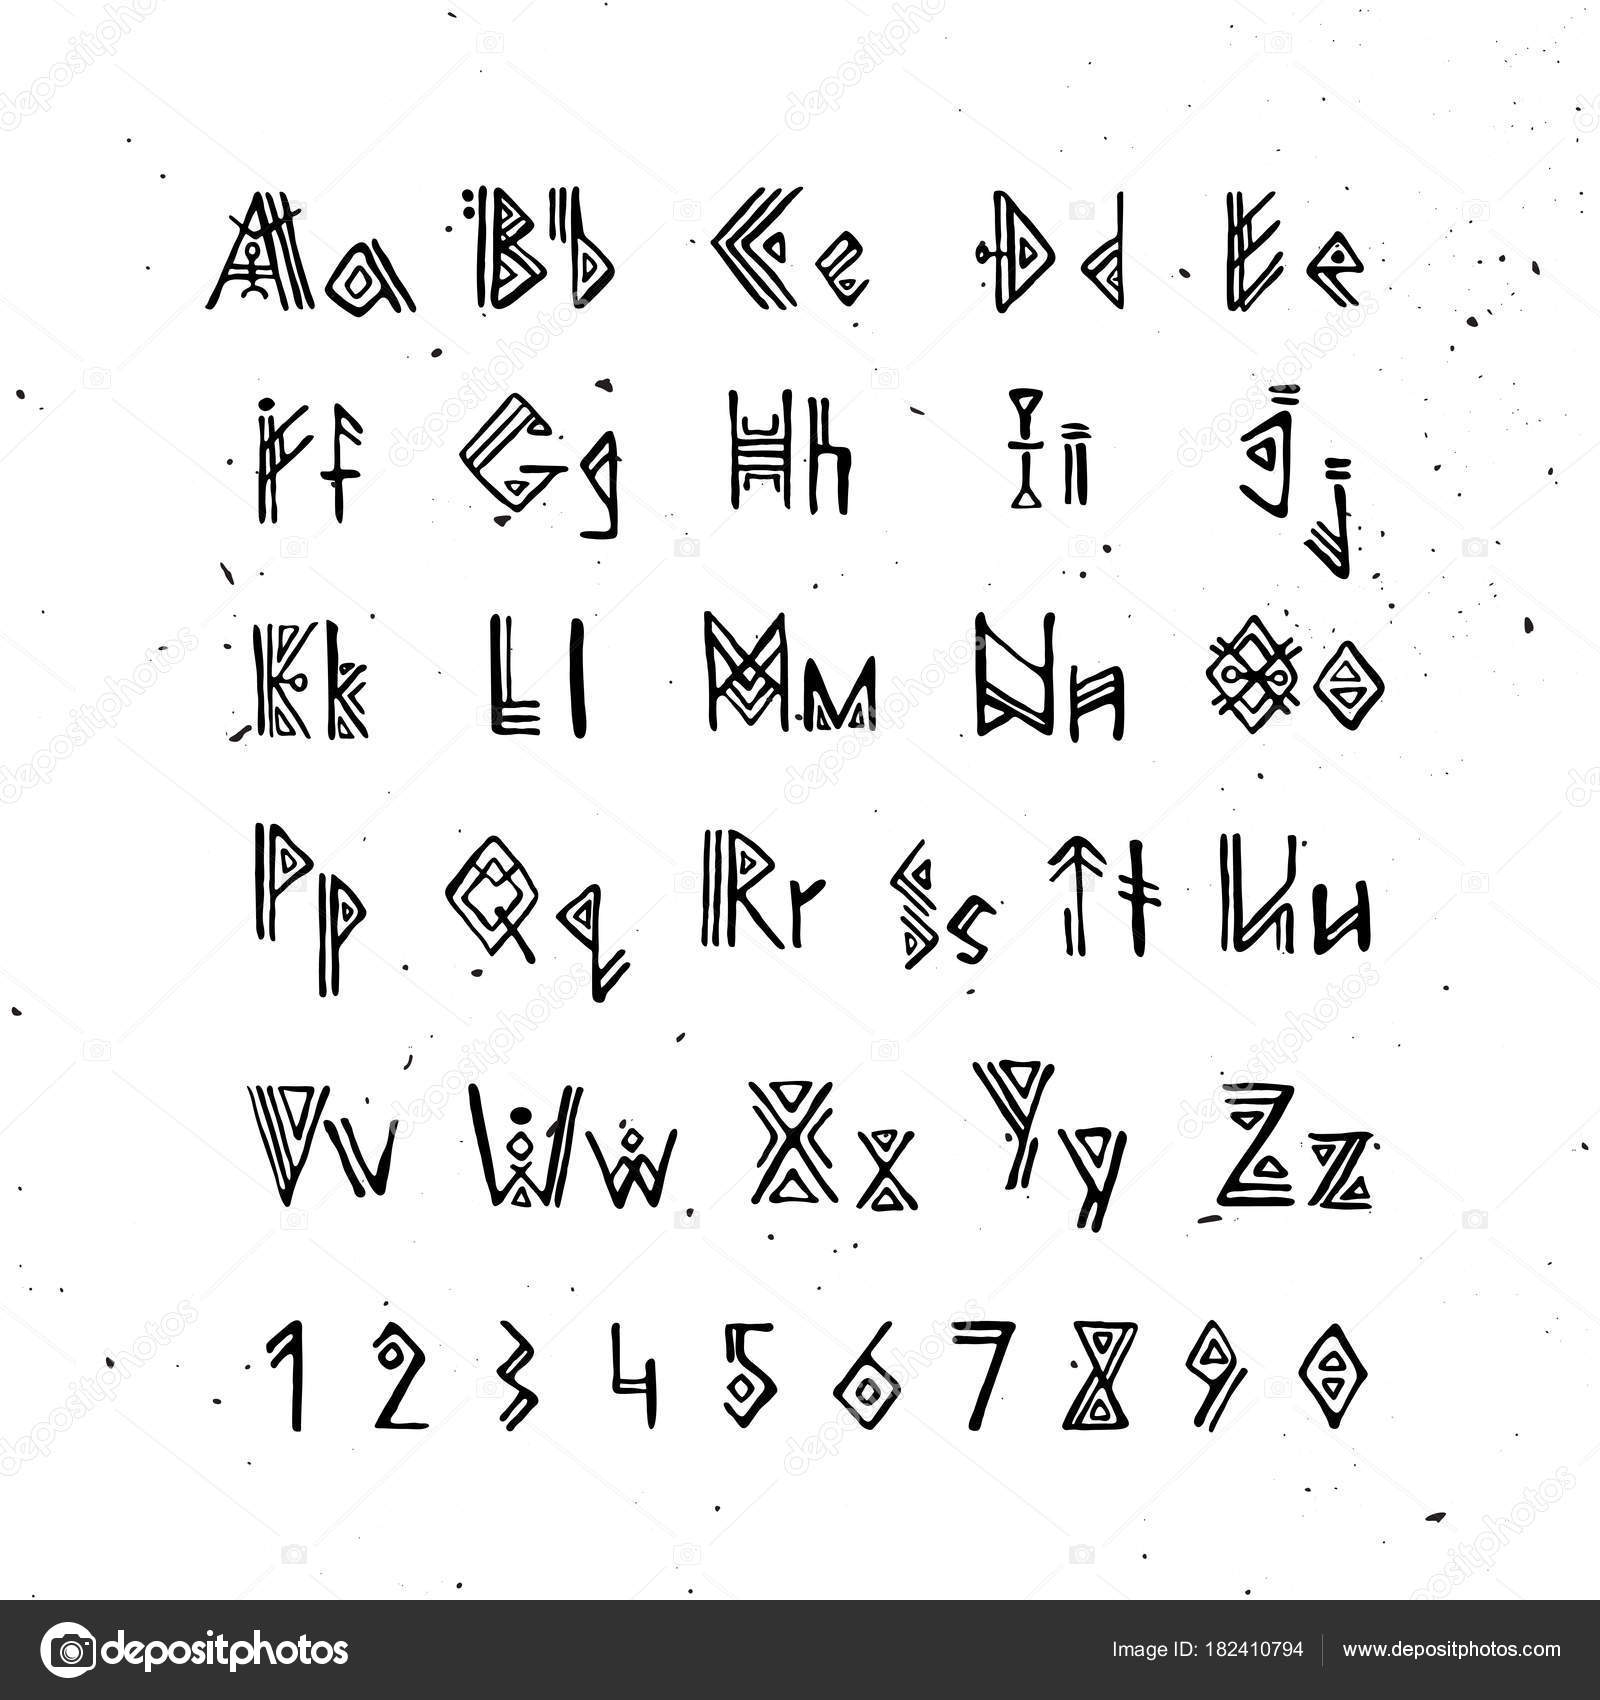 Old norse scandinavian font runic alphabet futhark style letters stock illustration old norse scandinavian font runic alphabet futhark style letters ancient occult symbols biocorpaavc